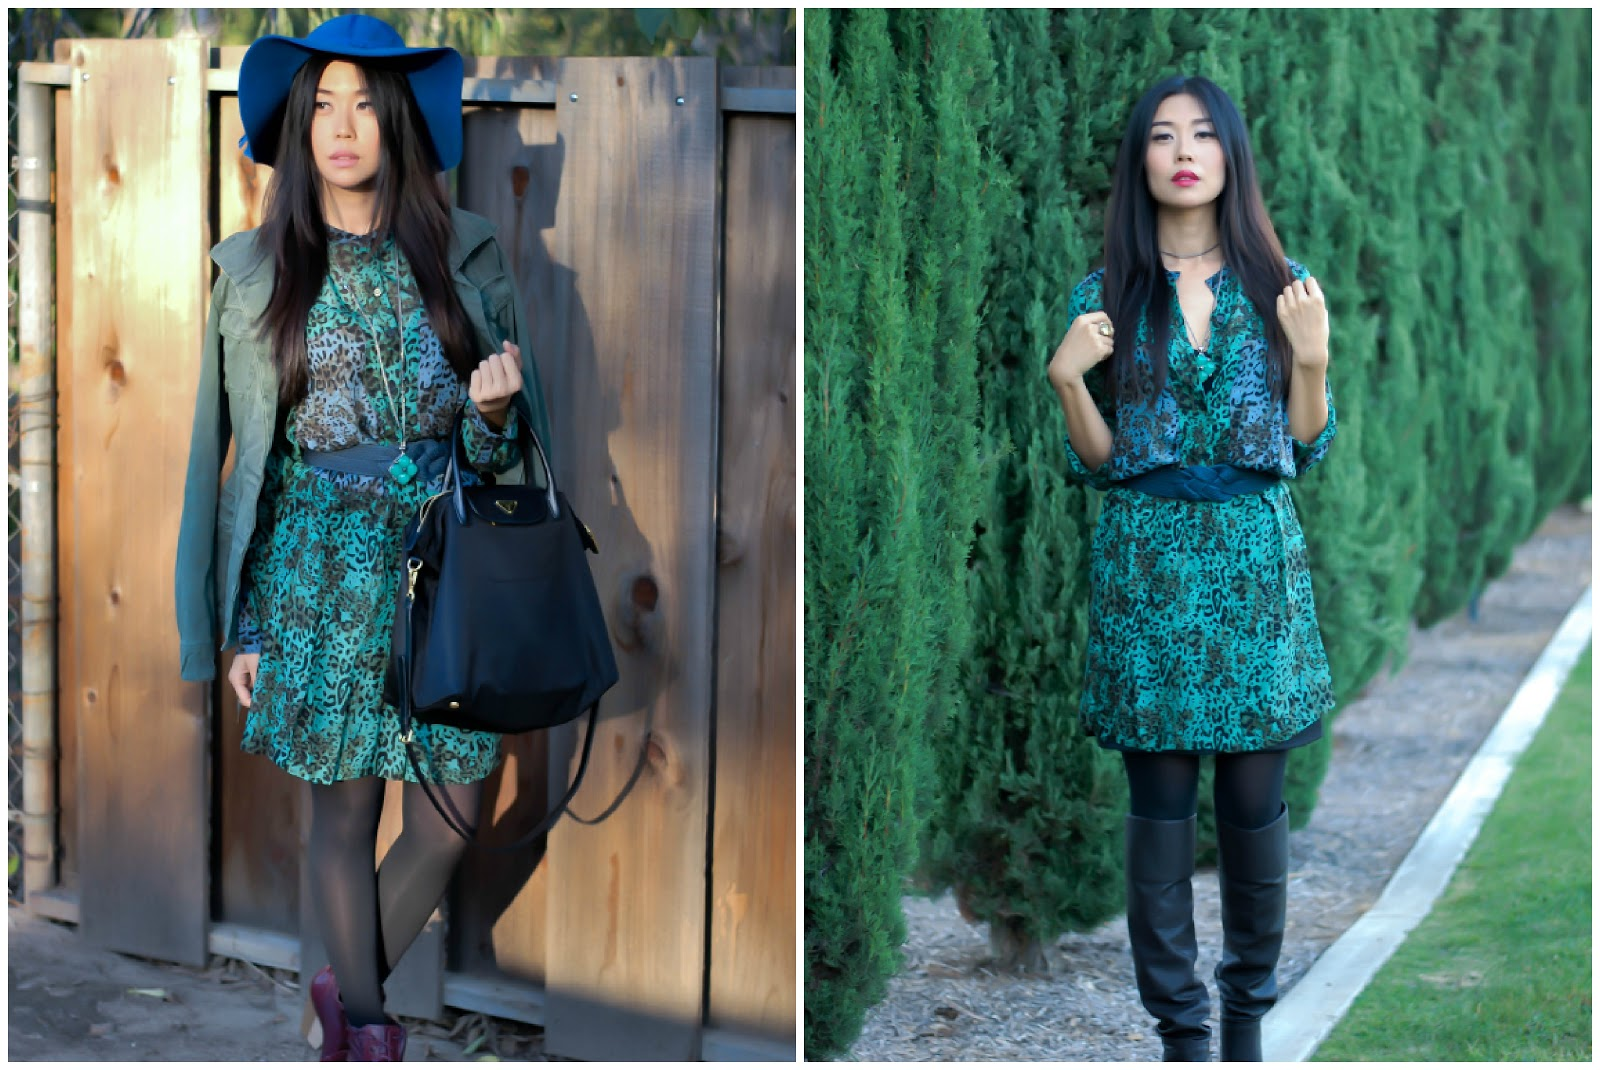 Personal Style Outfit Day To Night In Animal Print